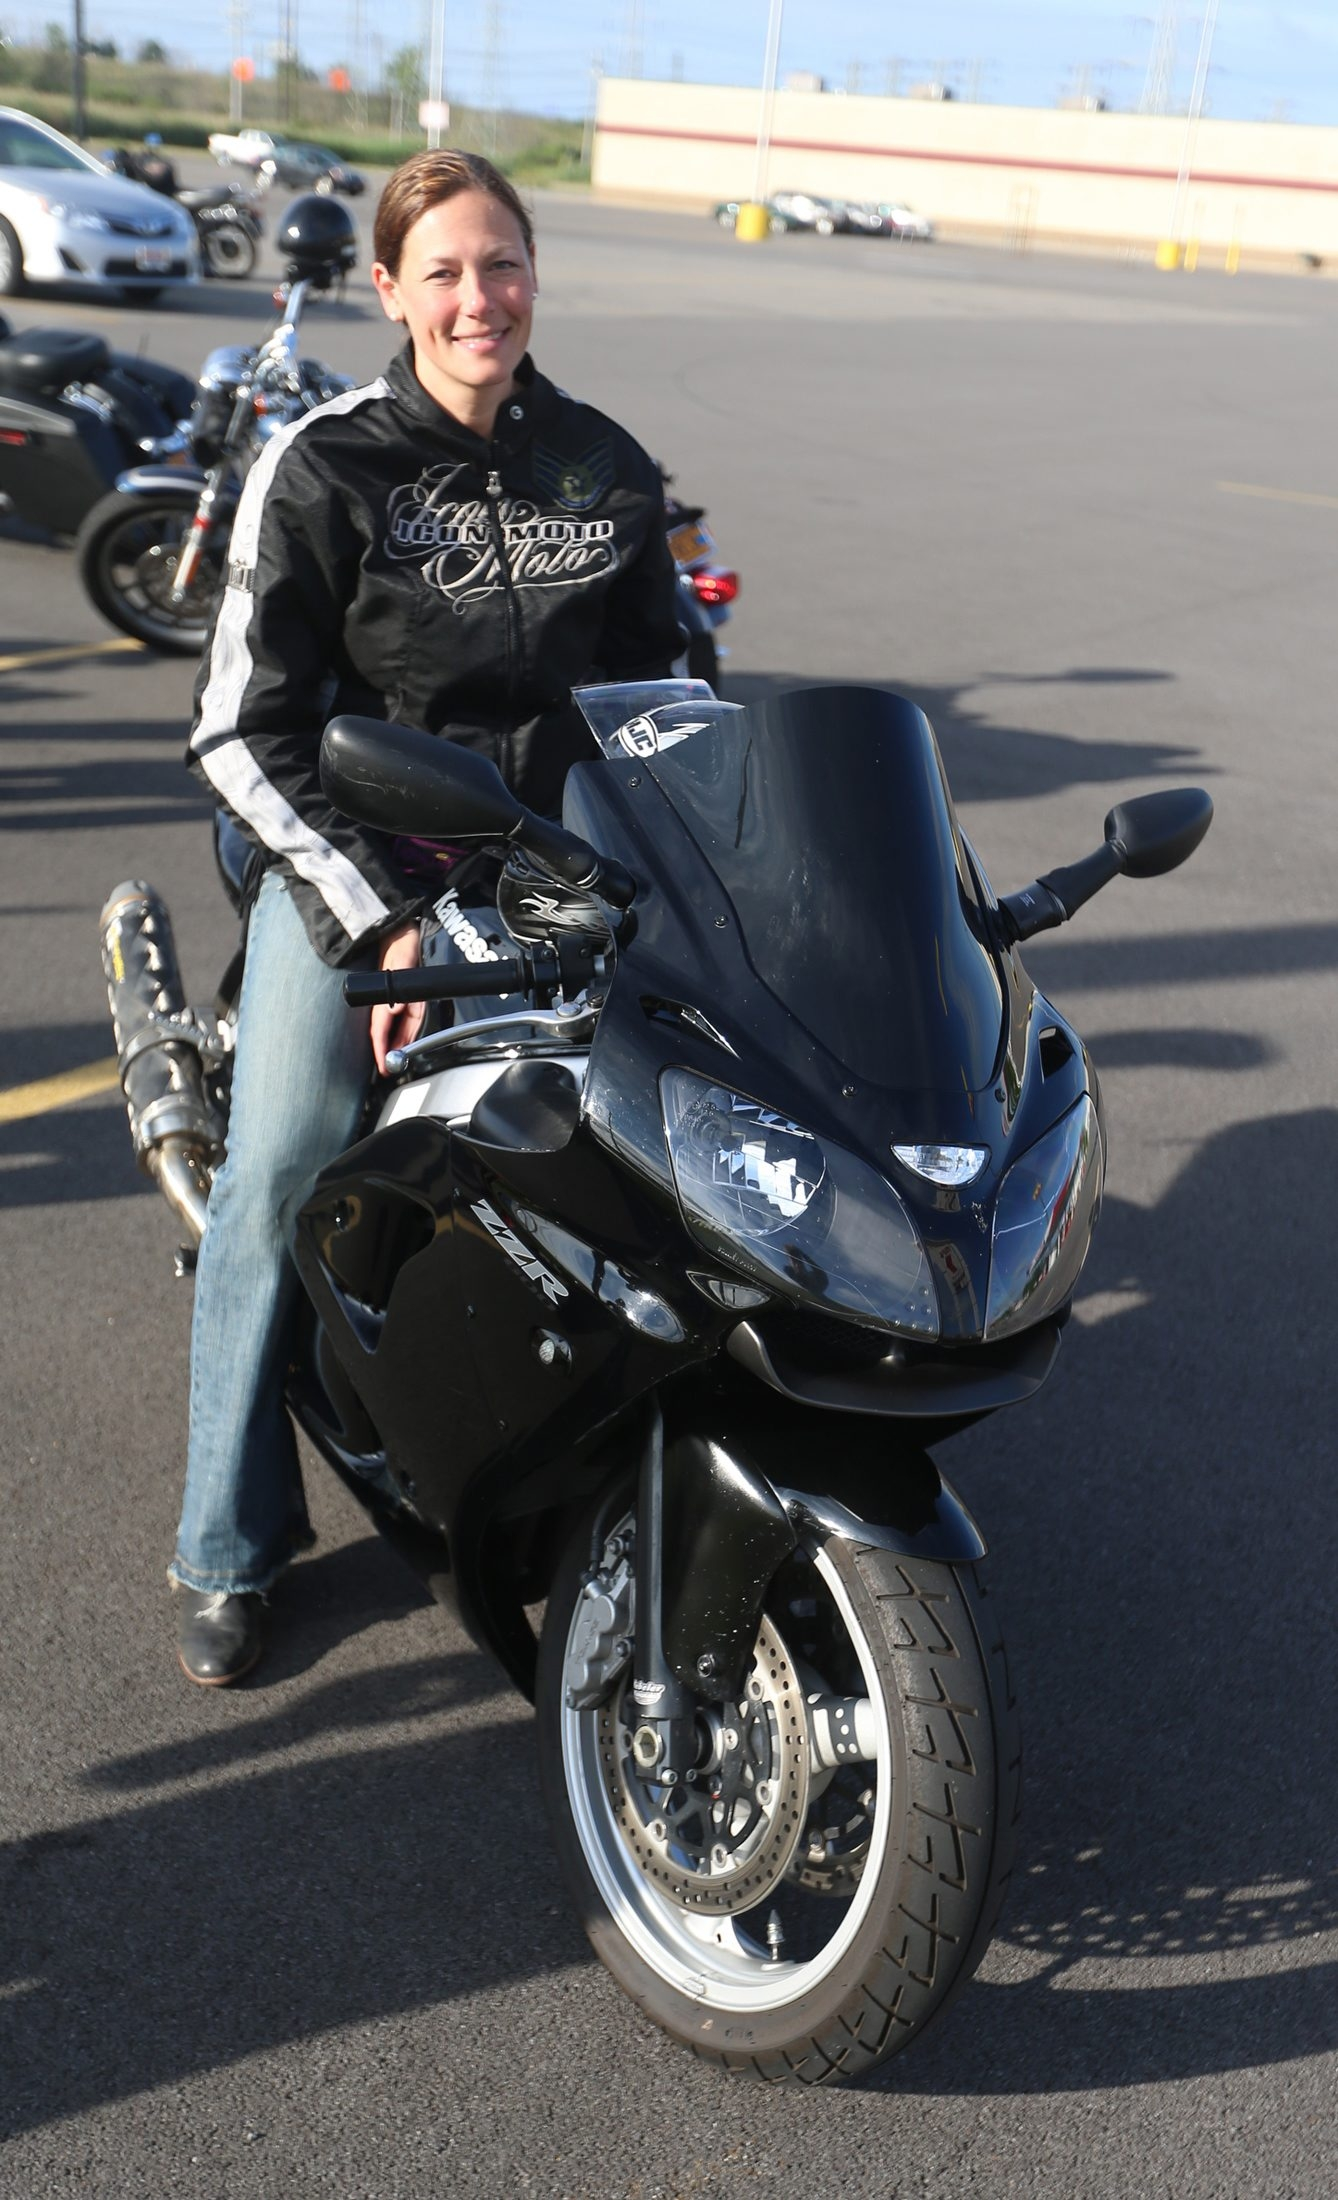 Air Force Staff Sgt. Heather Farr rides a Kawasaki Ninja 600 ZZR. She joined a group of other bikers on Saturday in riding to Erie, Pa., for the 10th anniversary of the Roar on the Shore.